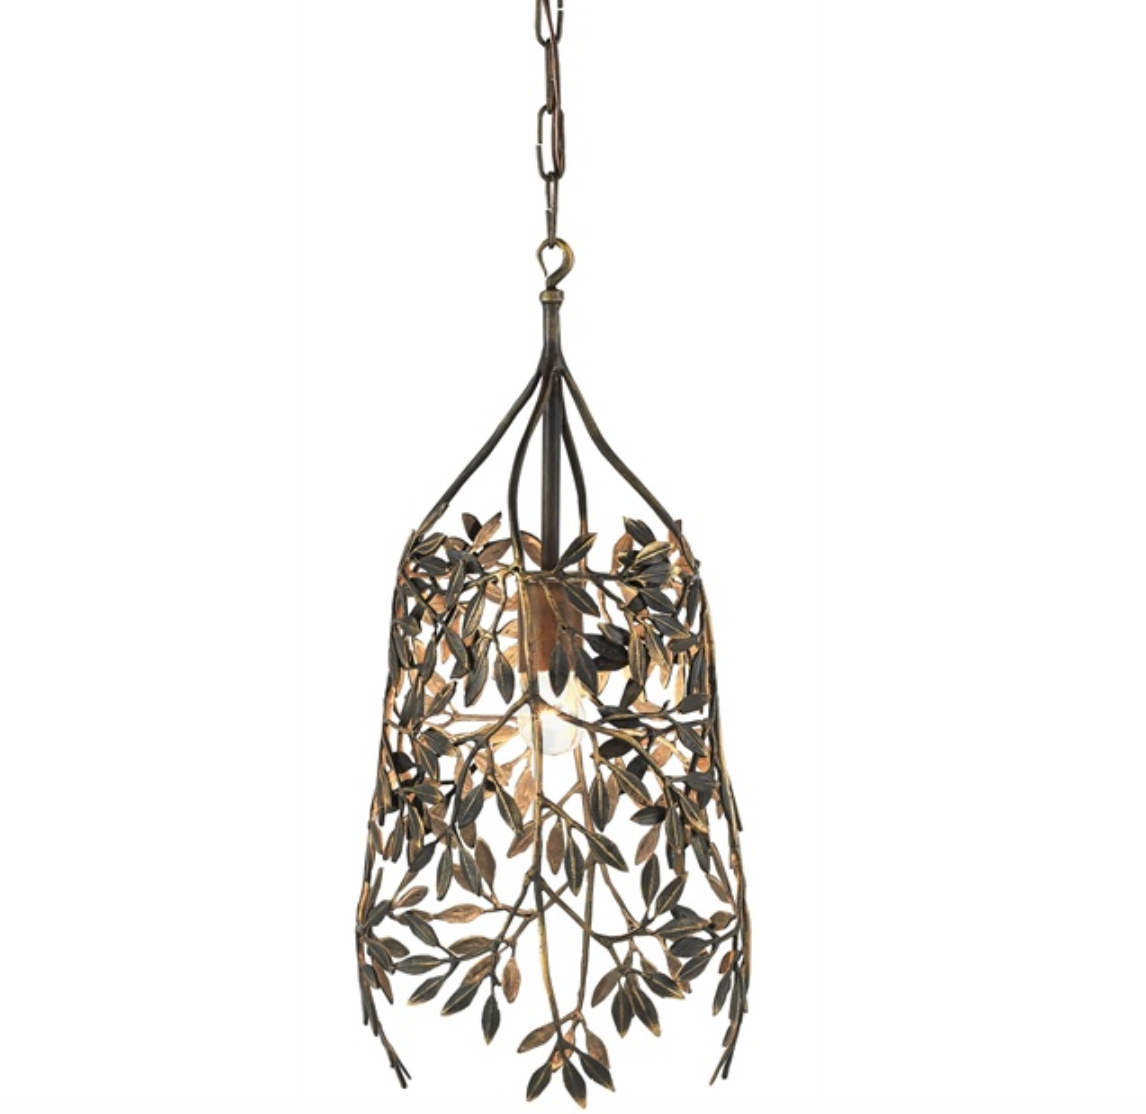 Parterre Pendant Light